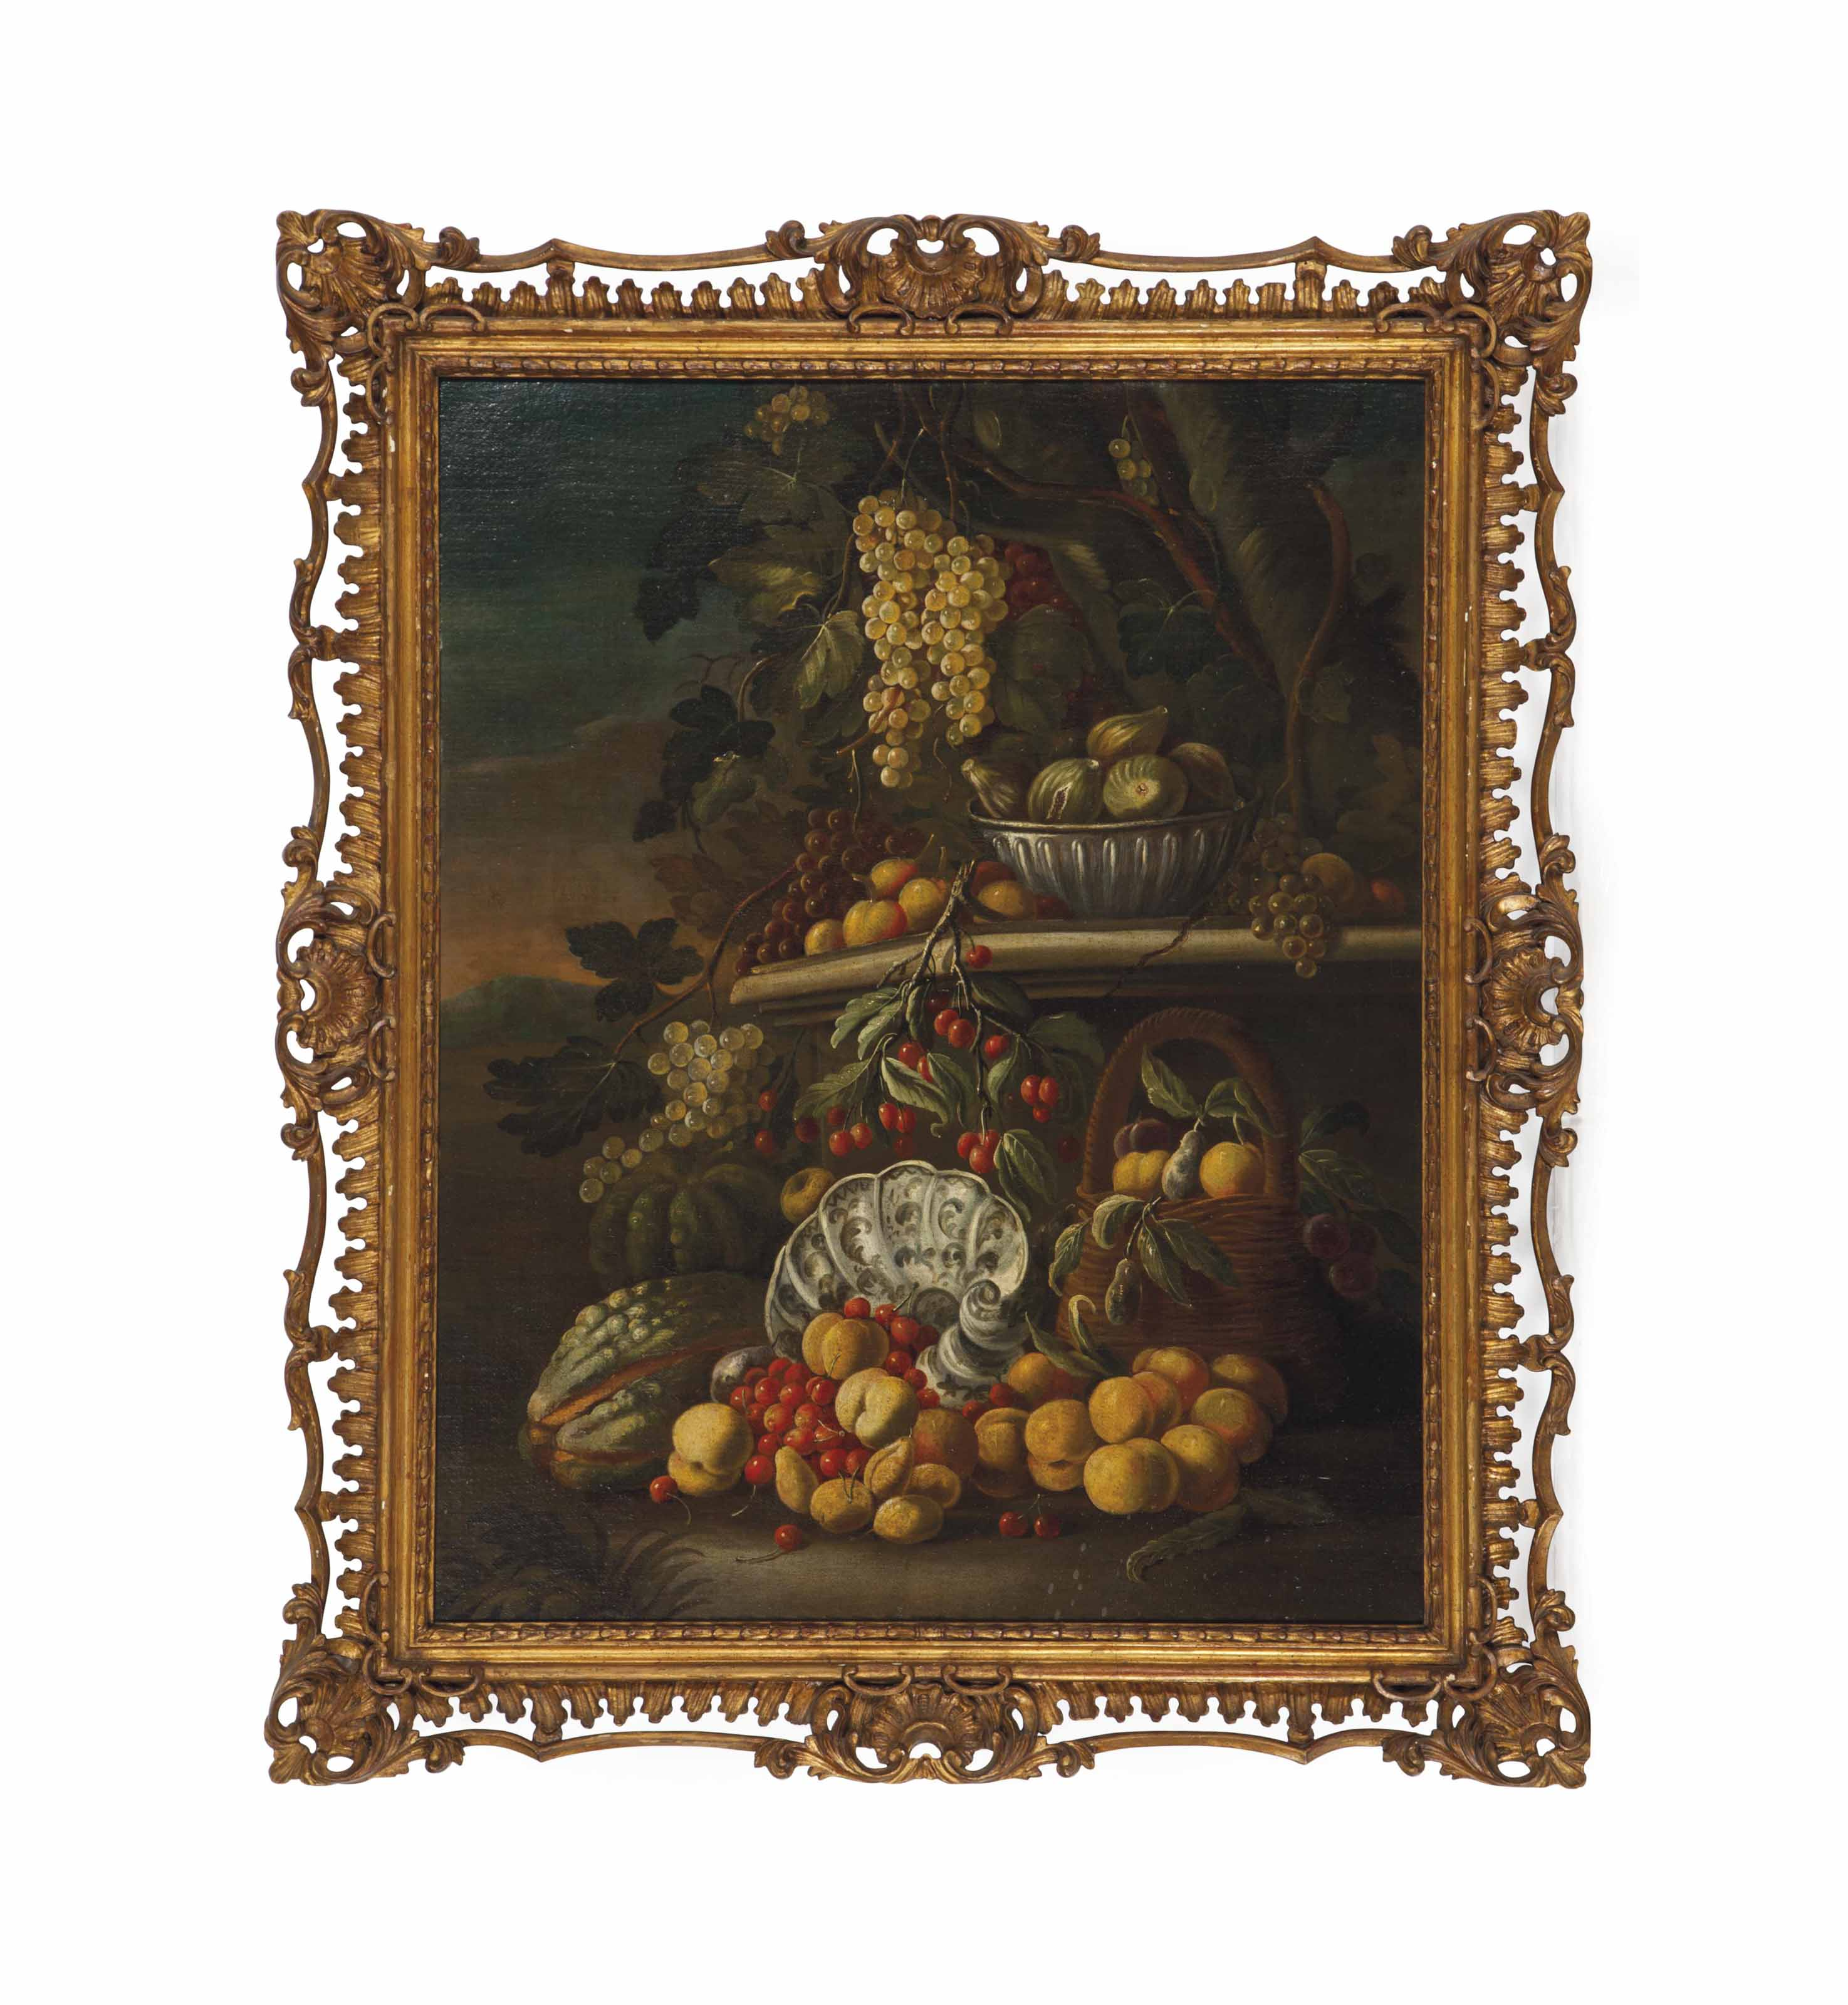 Still life with fruits in a garden